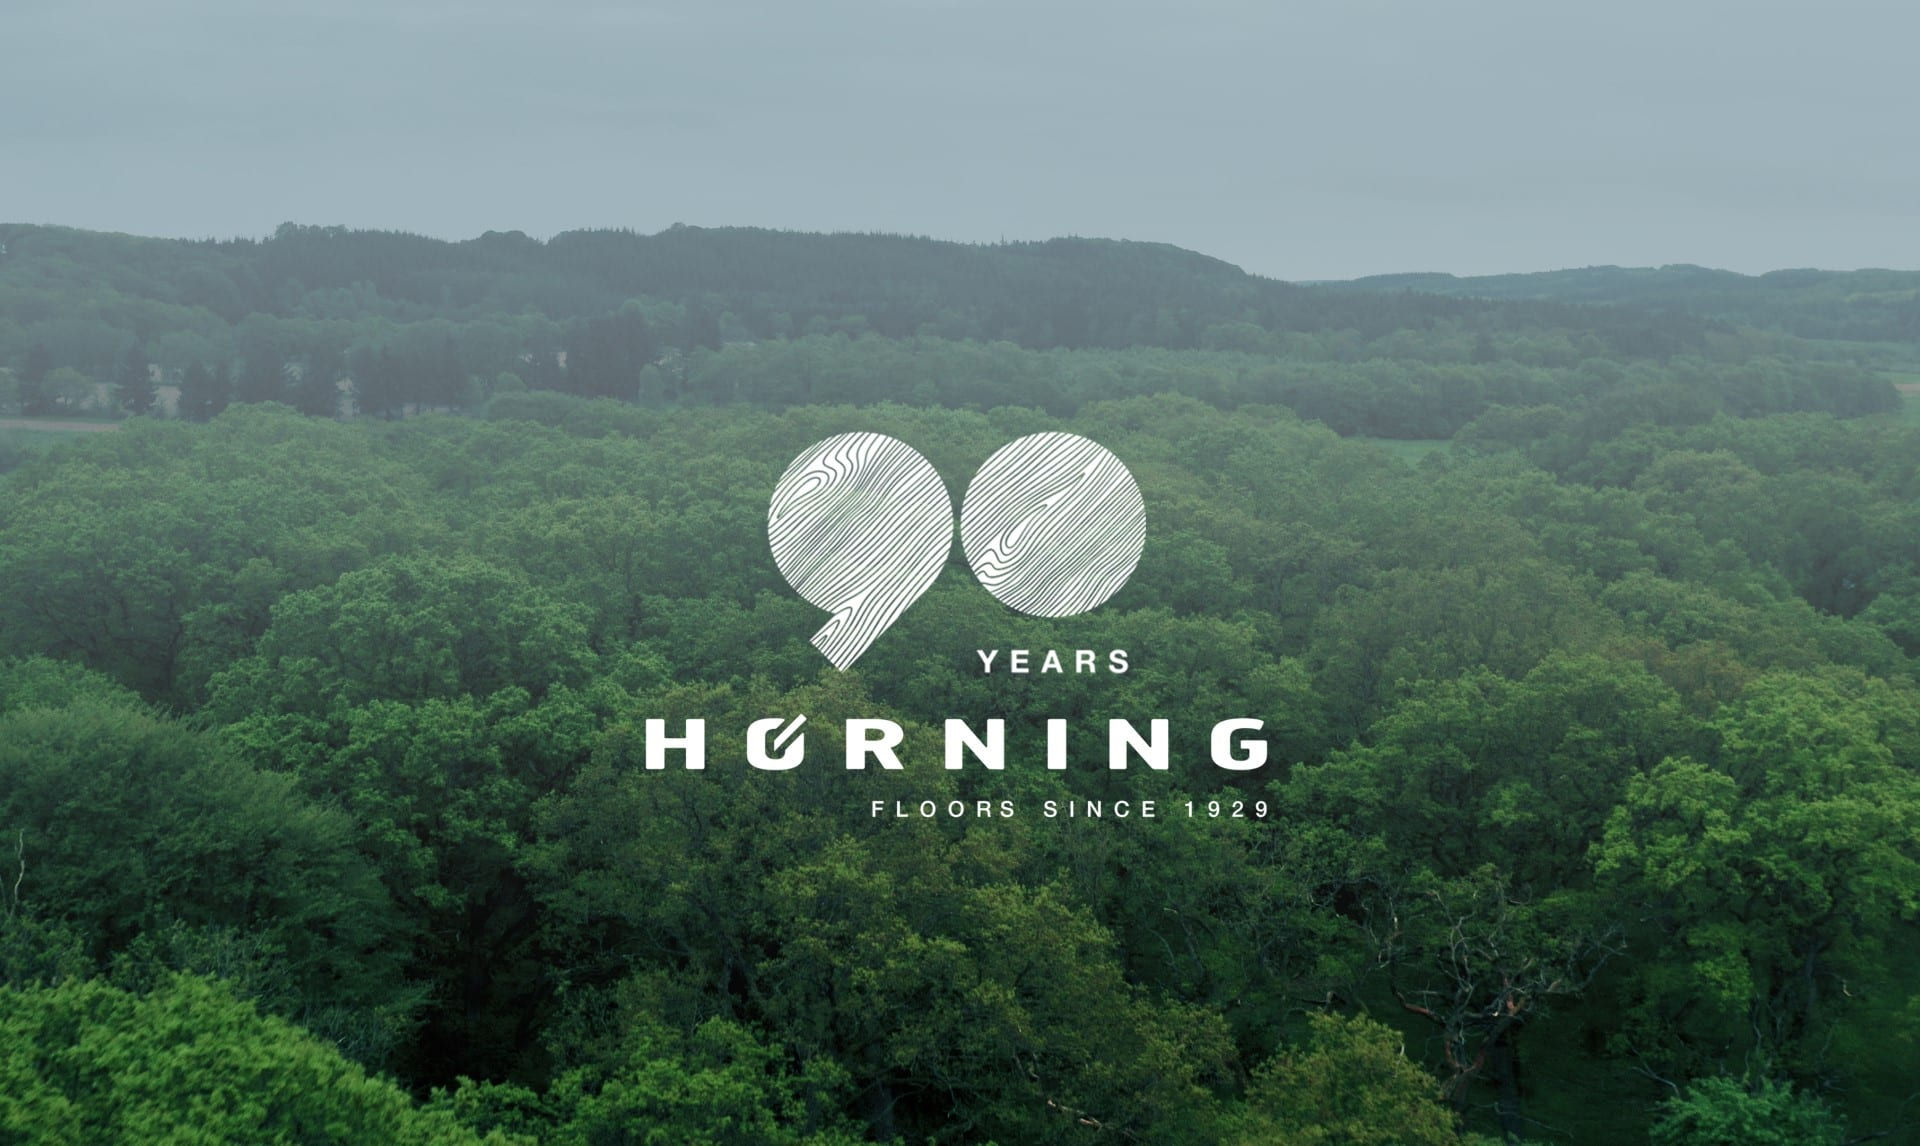 Hørning Parket celebrates its 90th anniversary with record profits!